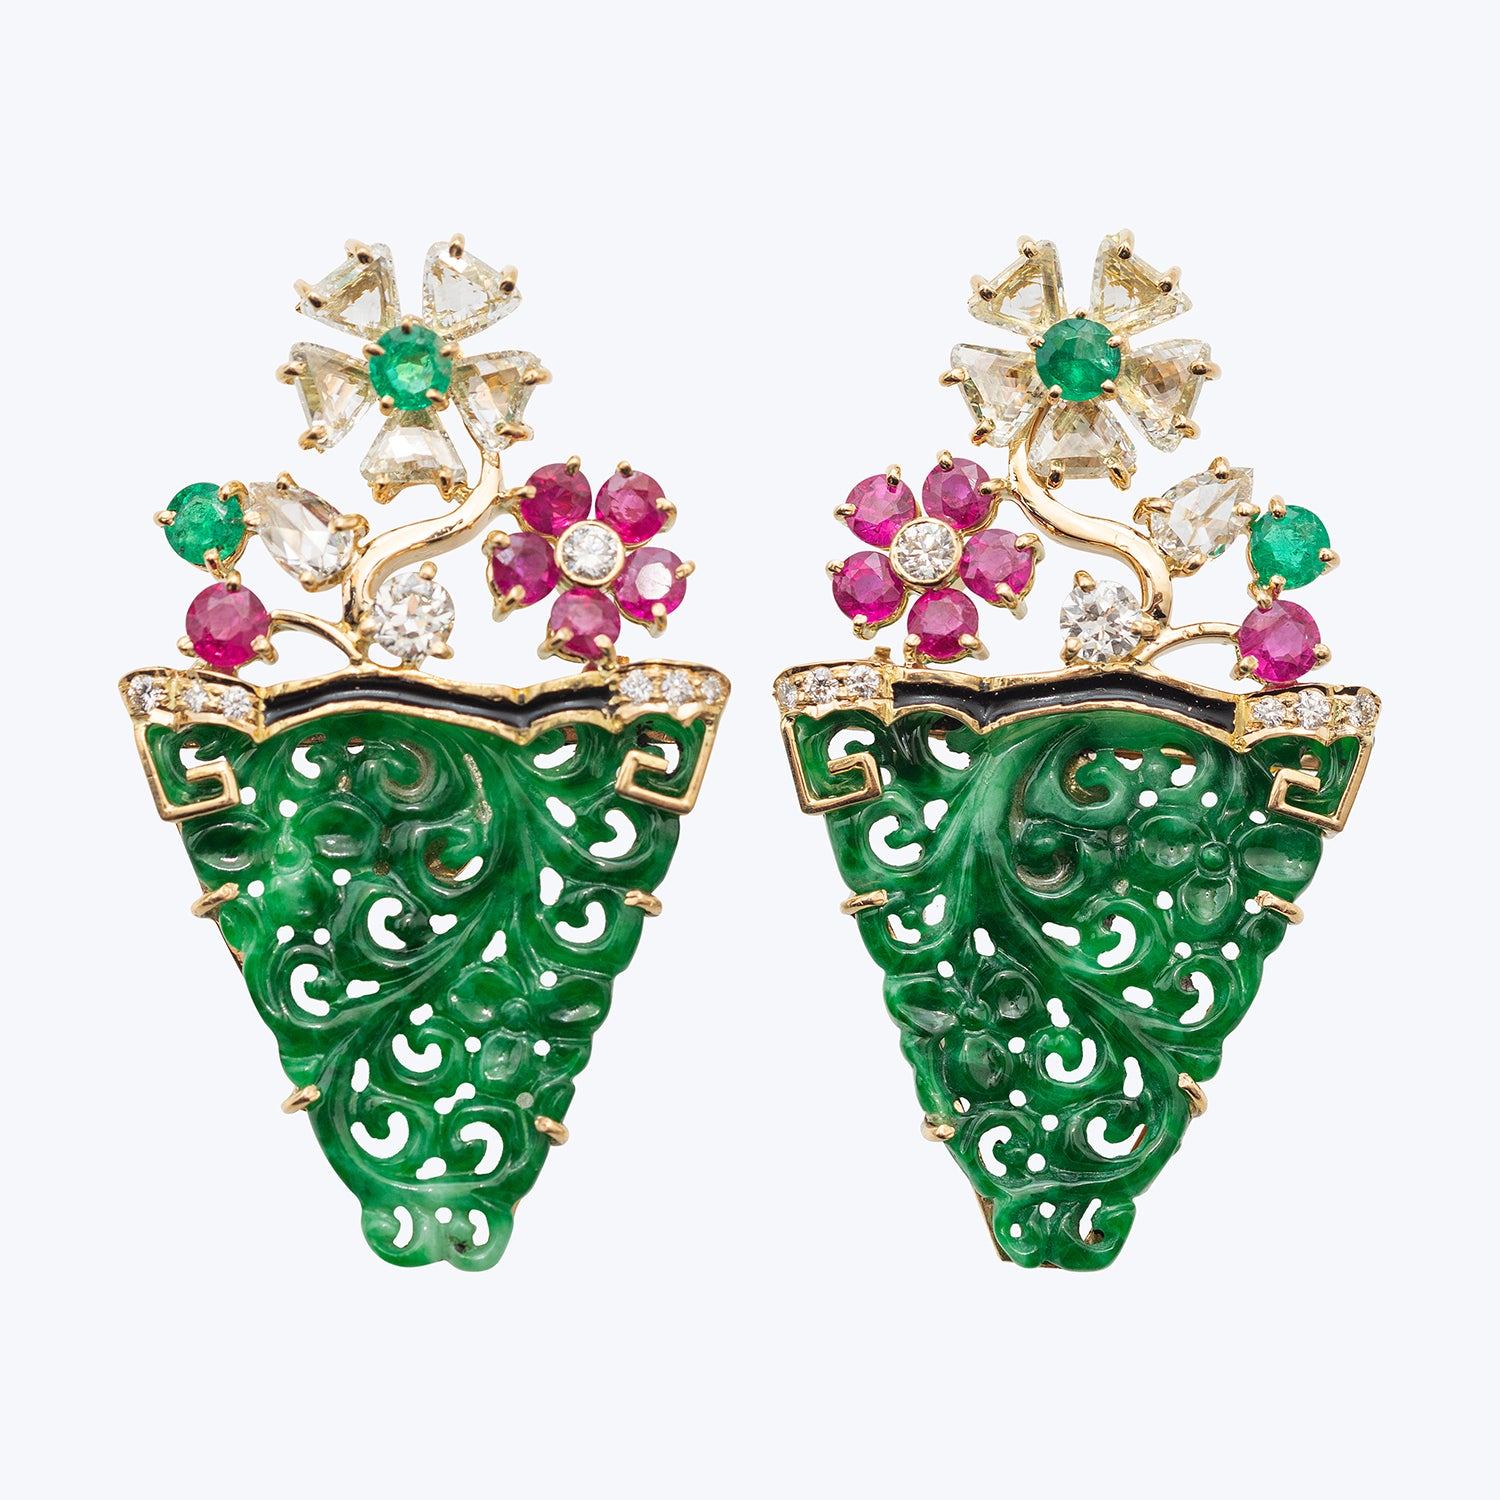 Jade Earrings with Ruby and Diamond wt. 14.59 g.